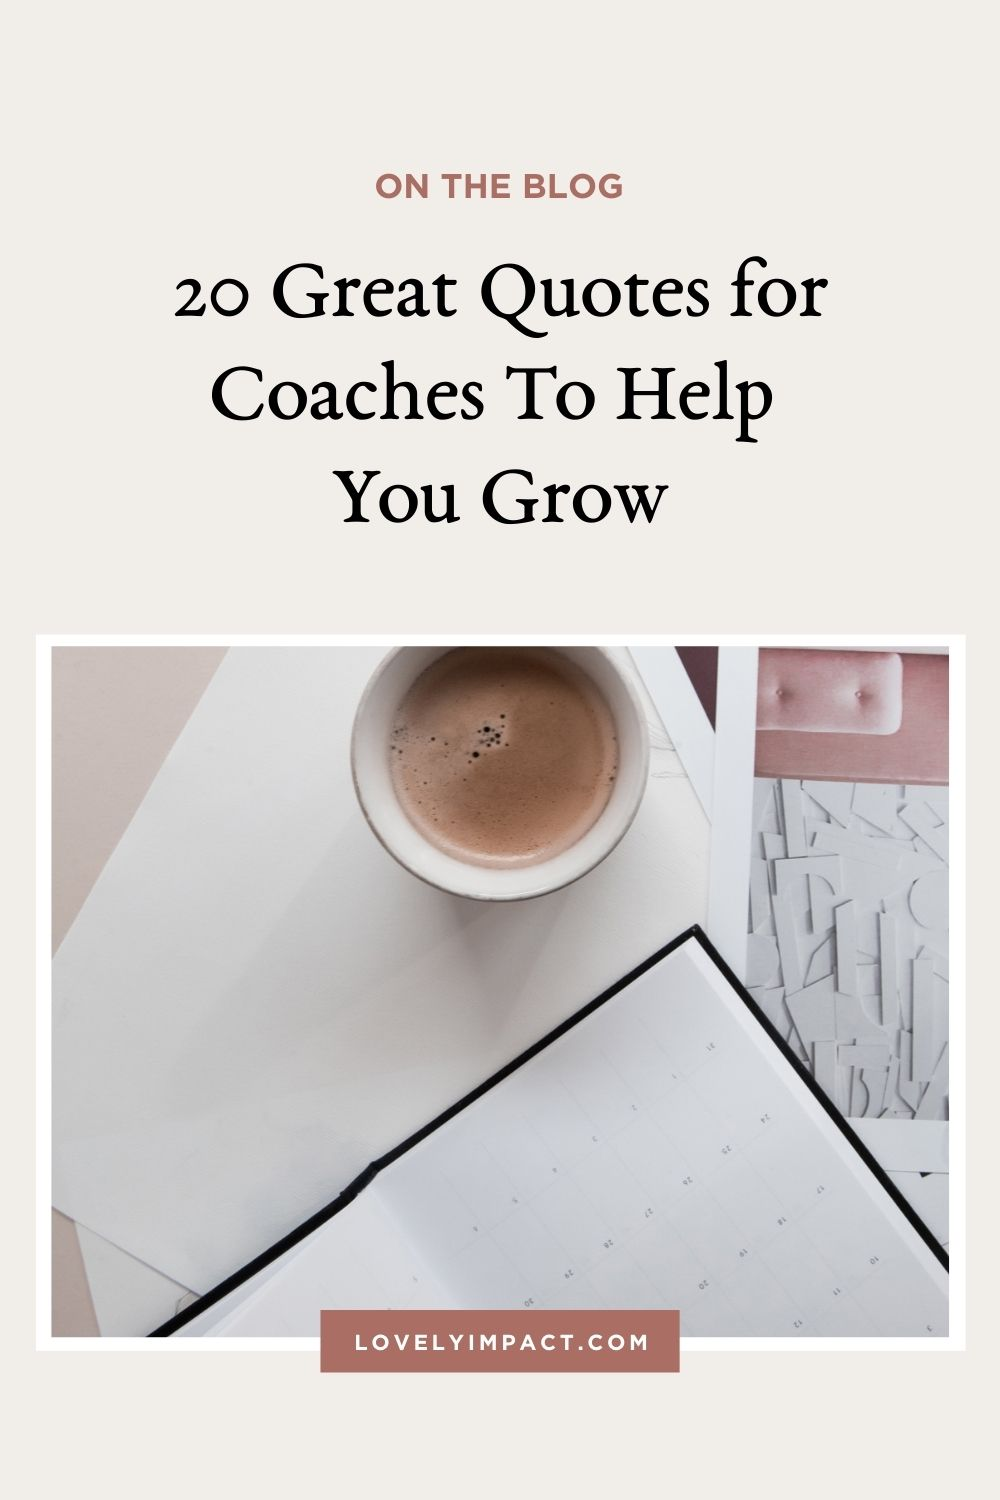 20 Great Quotes For Coaches To Help You Grow